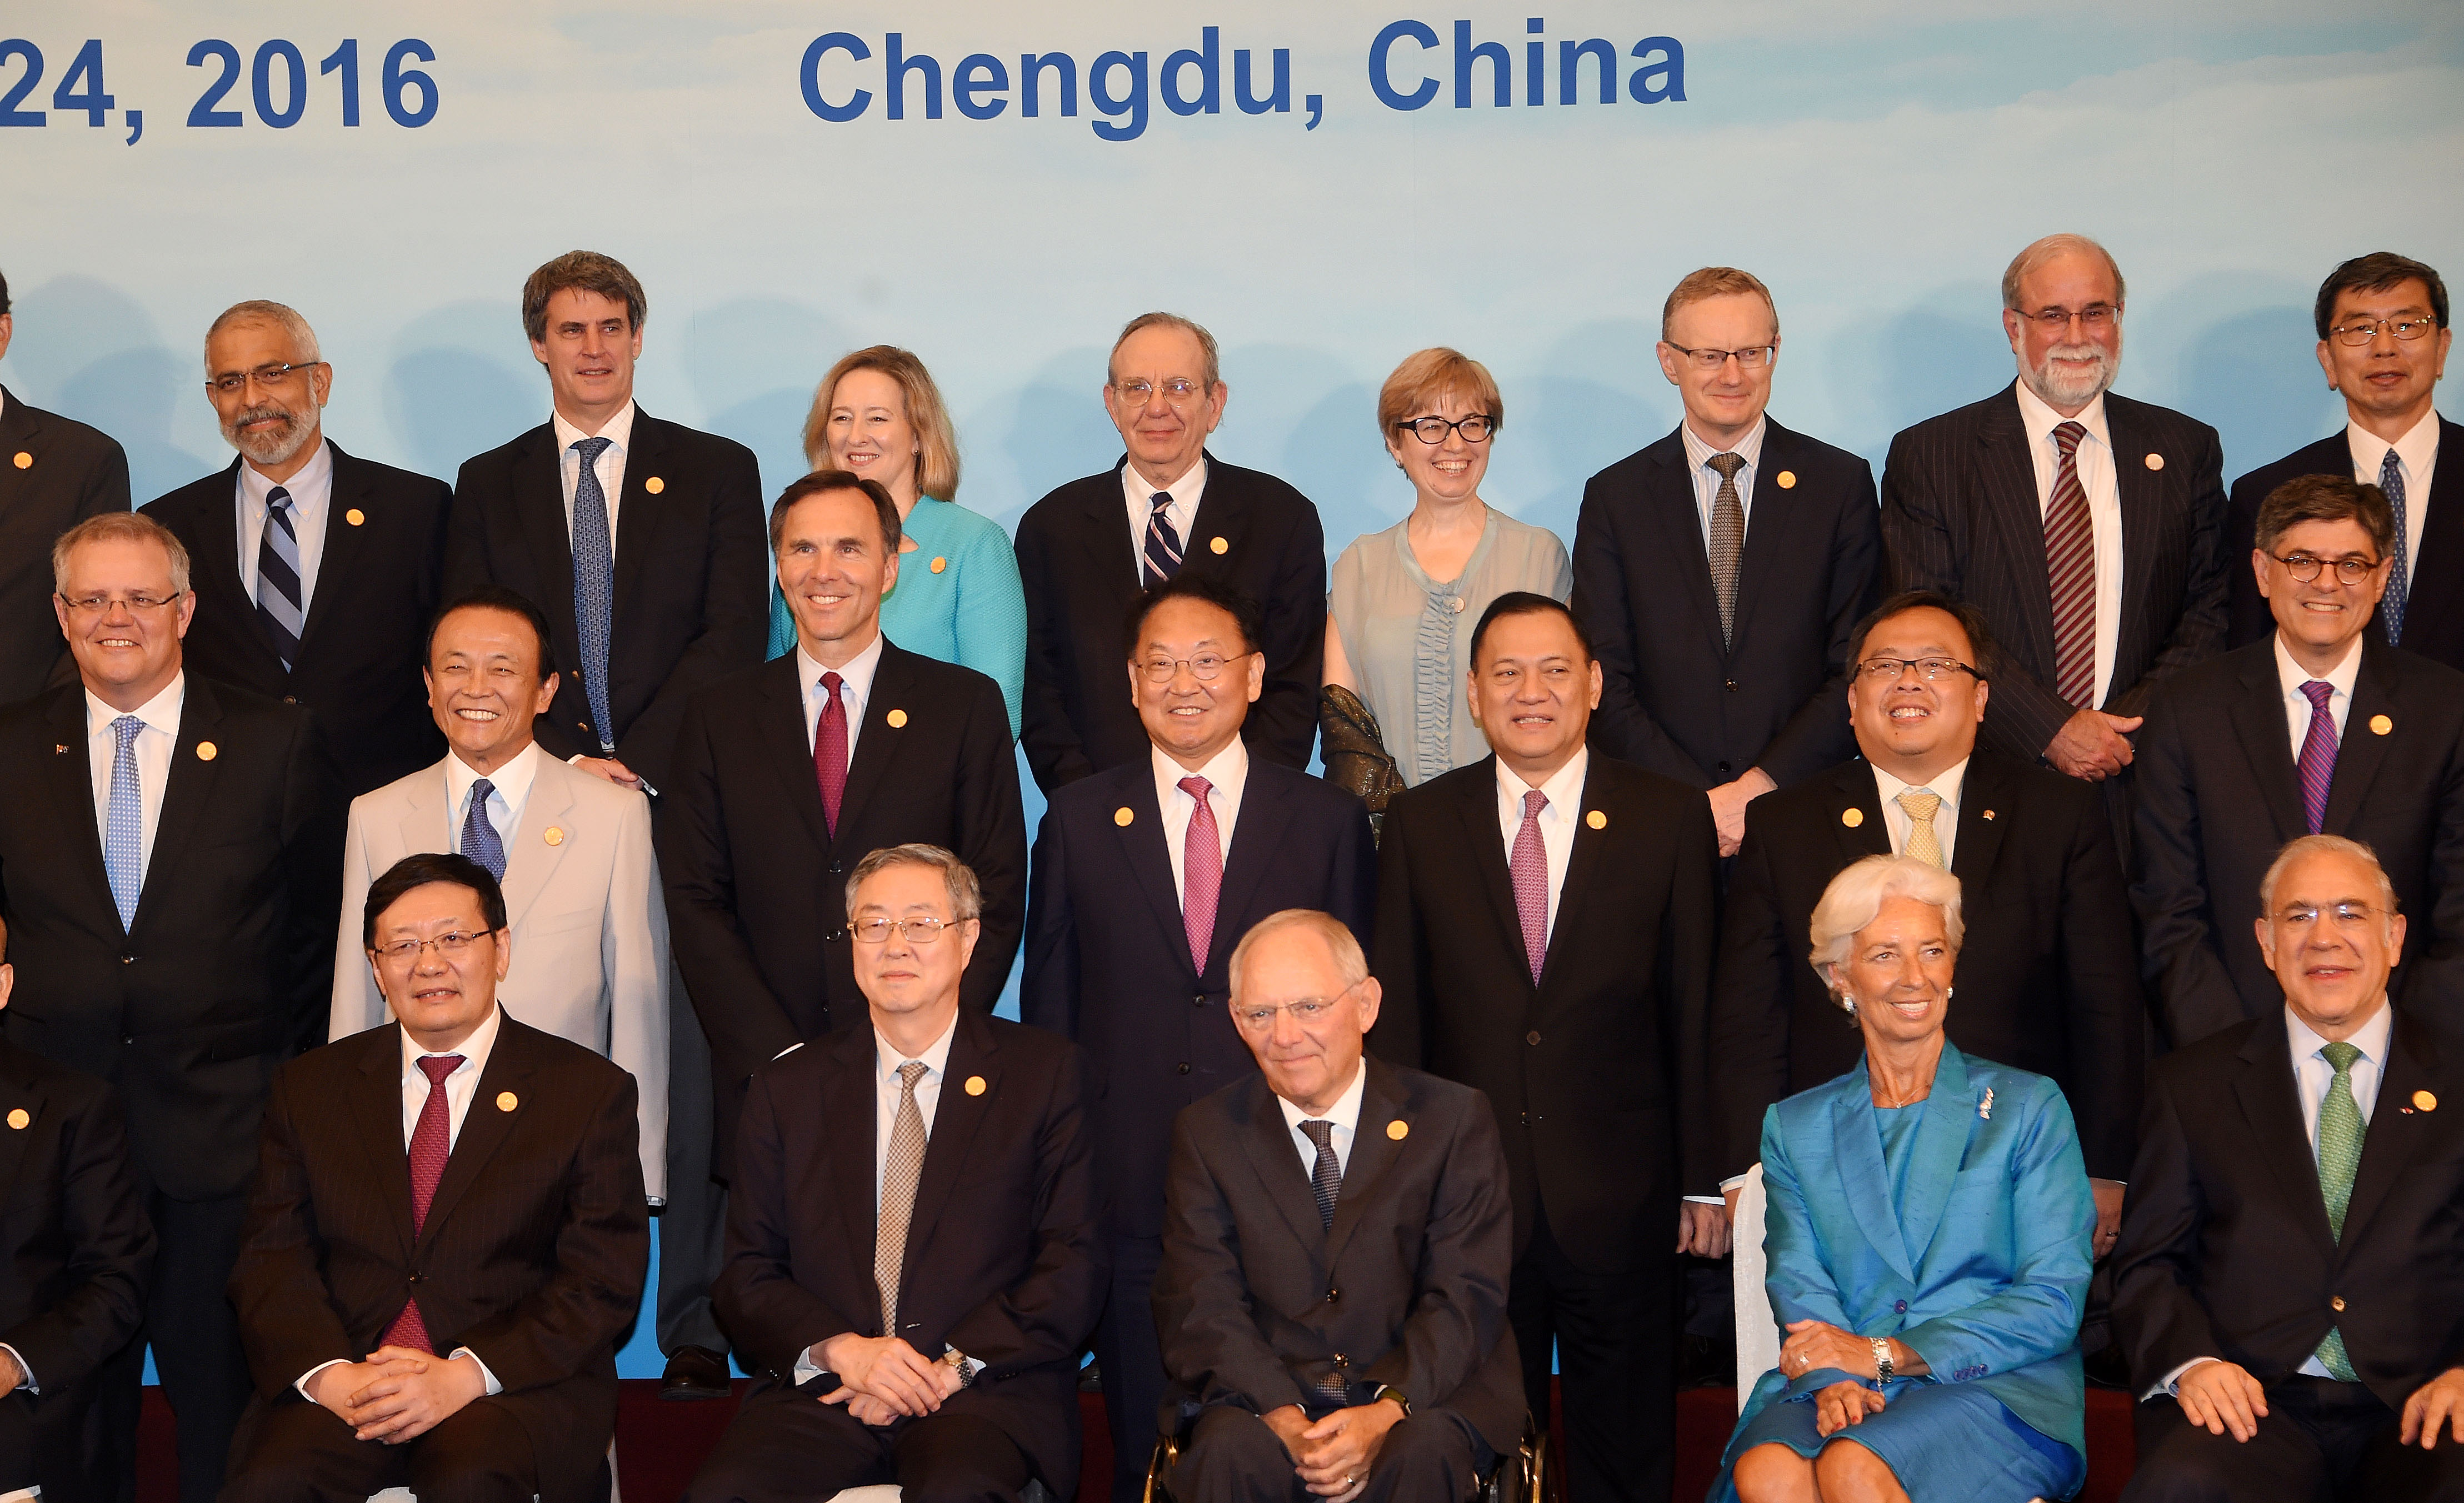 Deputy Prime Minister Yoo poses for G20 Finance Ministers and Central Bank Governors Meeting group photo in Chengdu, China